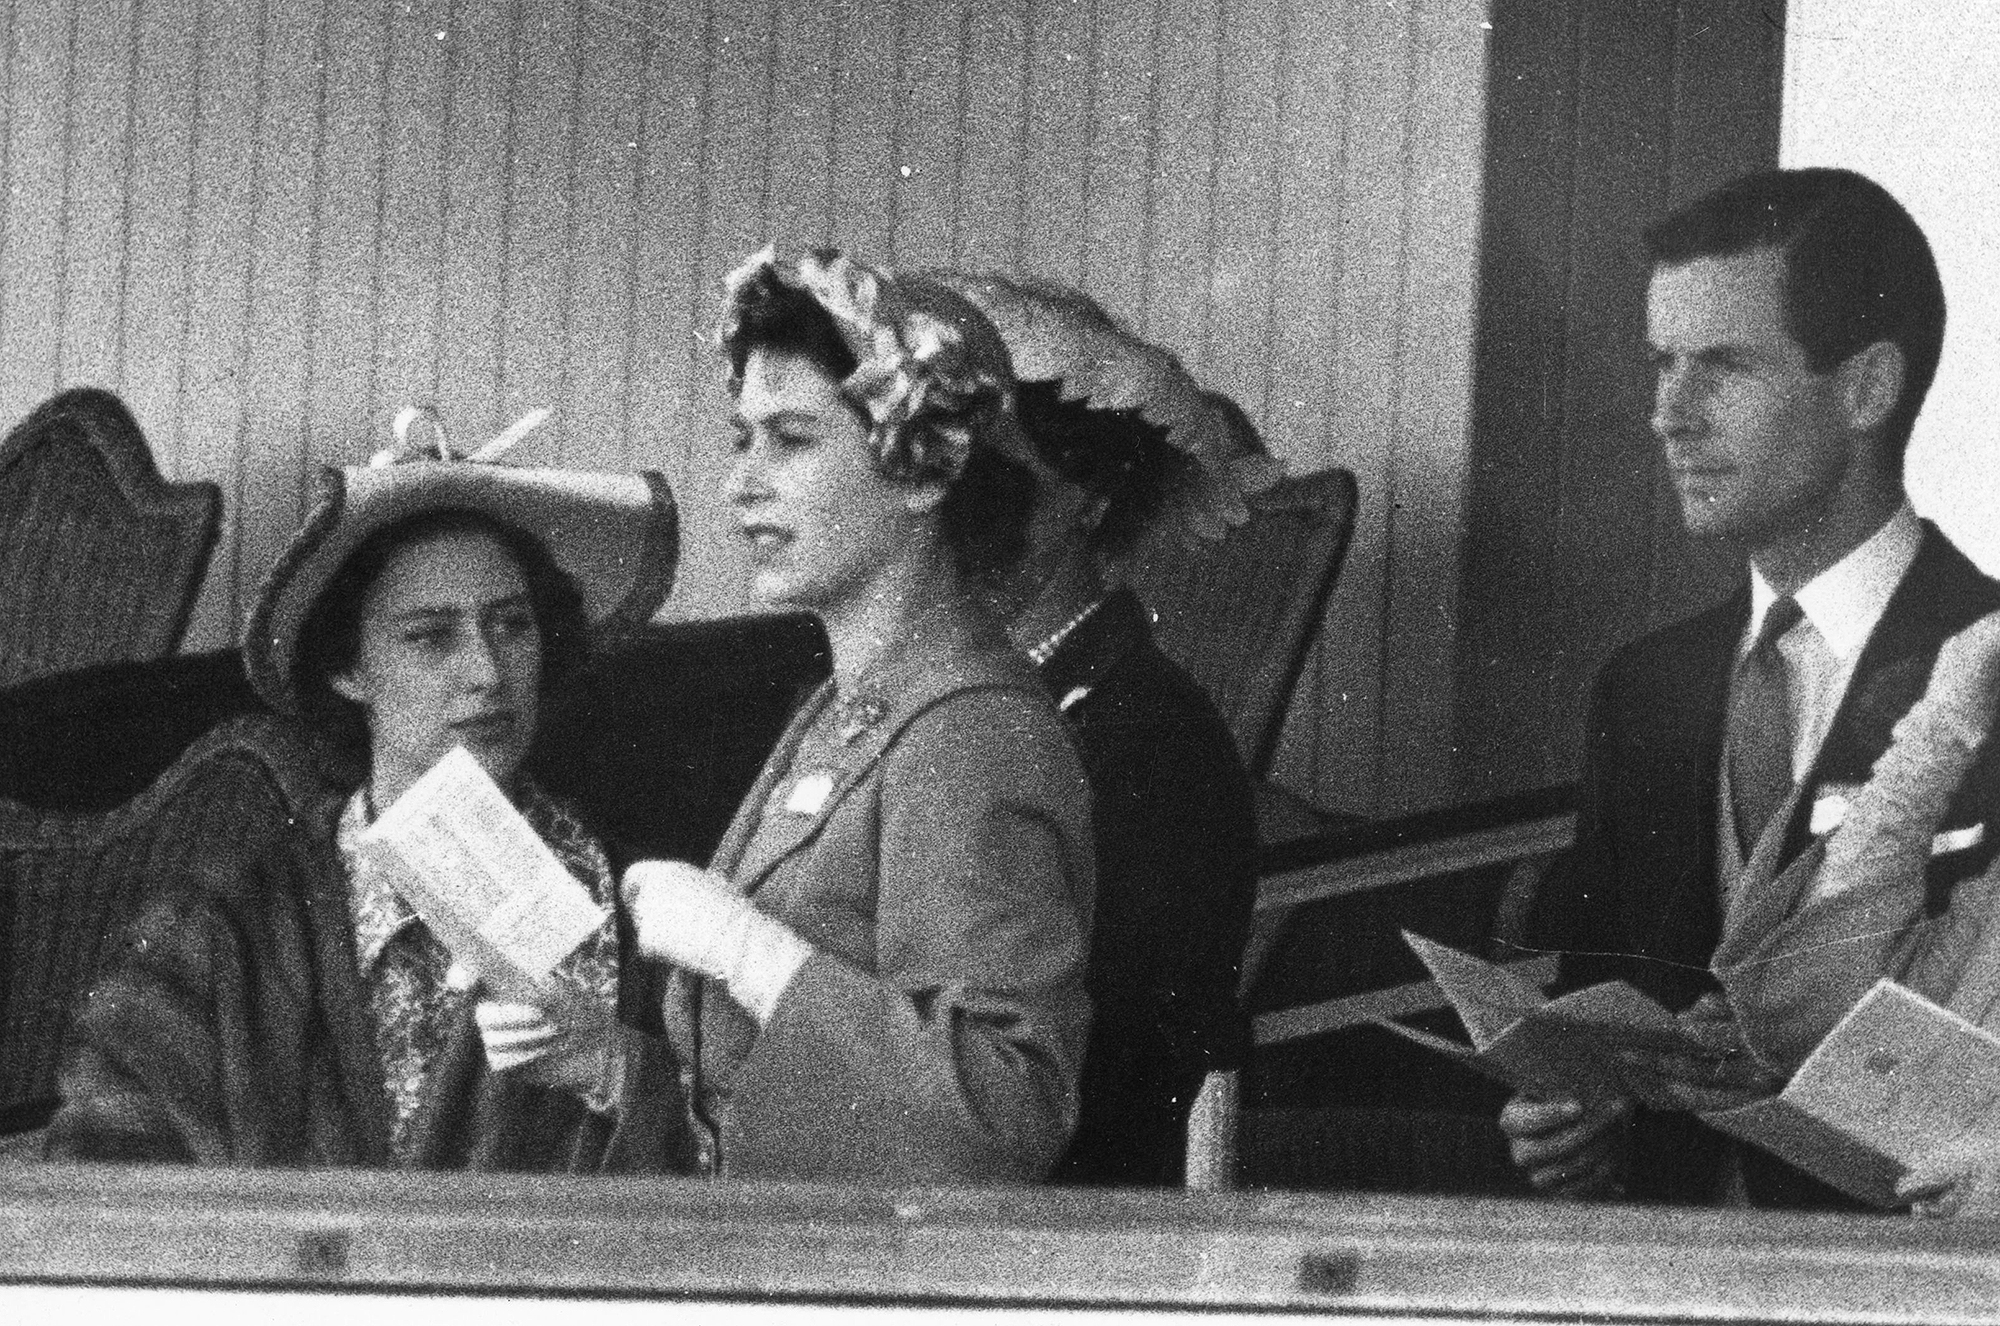 13th June 1951: Princess Margaret (1930 - 2002), Princess Elizabeth and Group Captain Peter Townsend in the Royal Box at Ascot. In 1955 Princess Margaret was refused permission to marry Townsend, a divorced Royal Air Force captain. (Photo by Keystone/Getty Images)